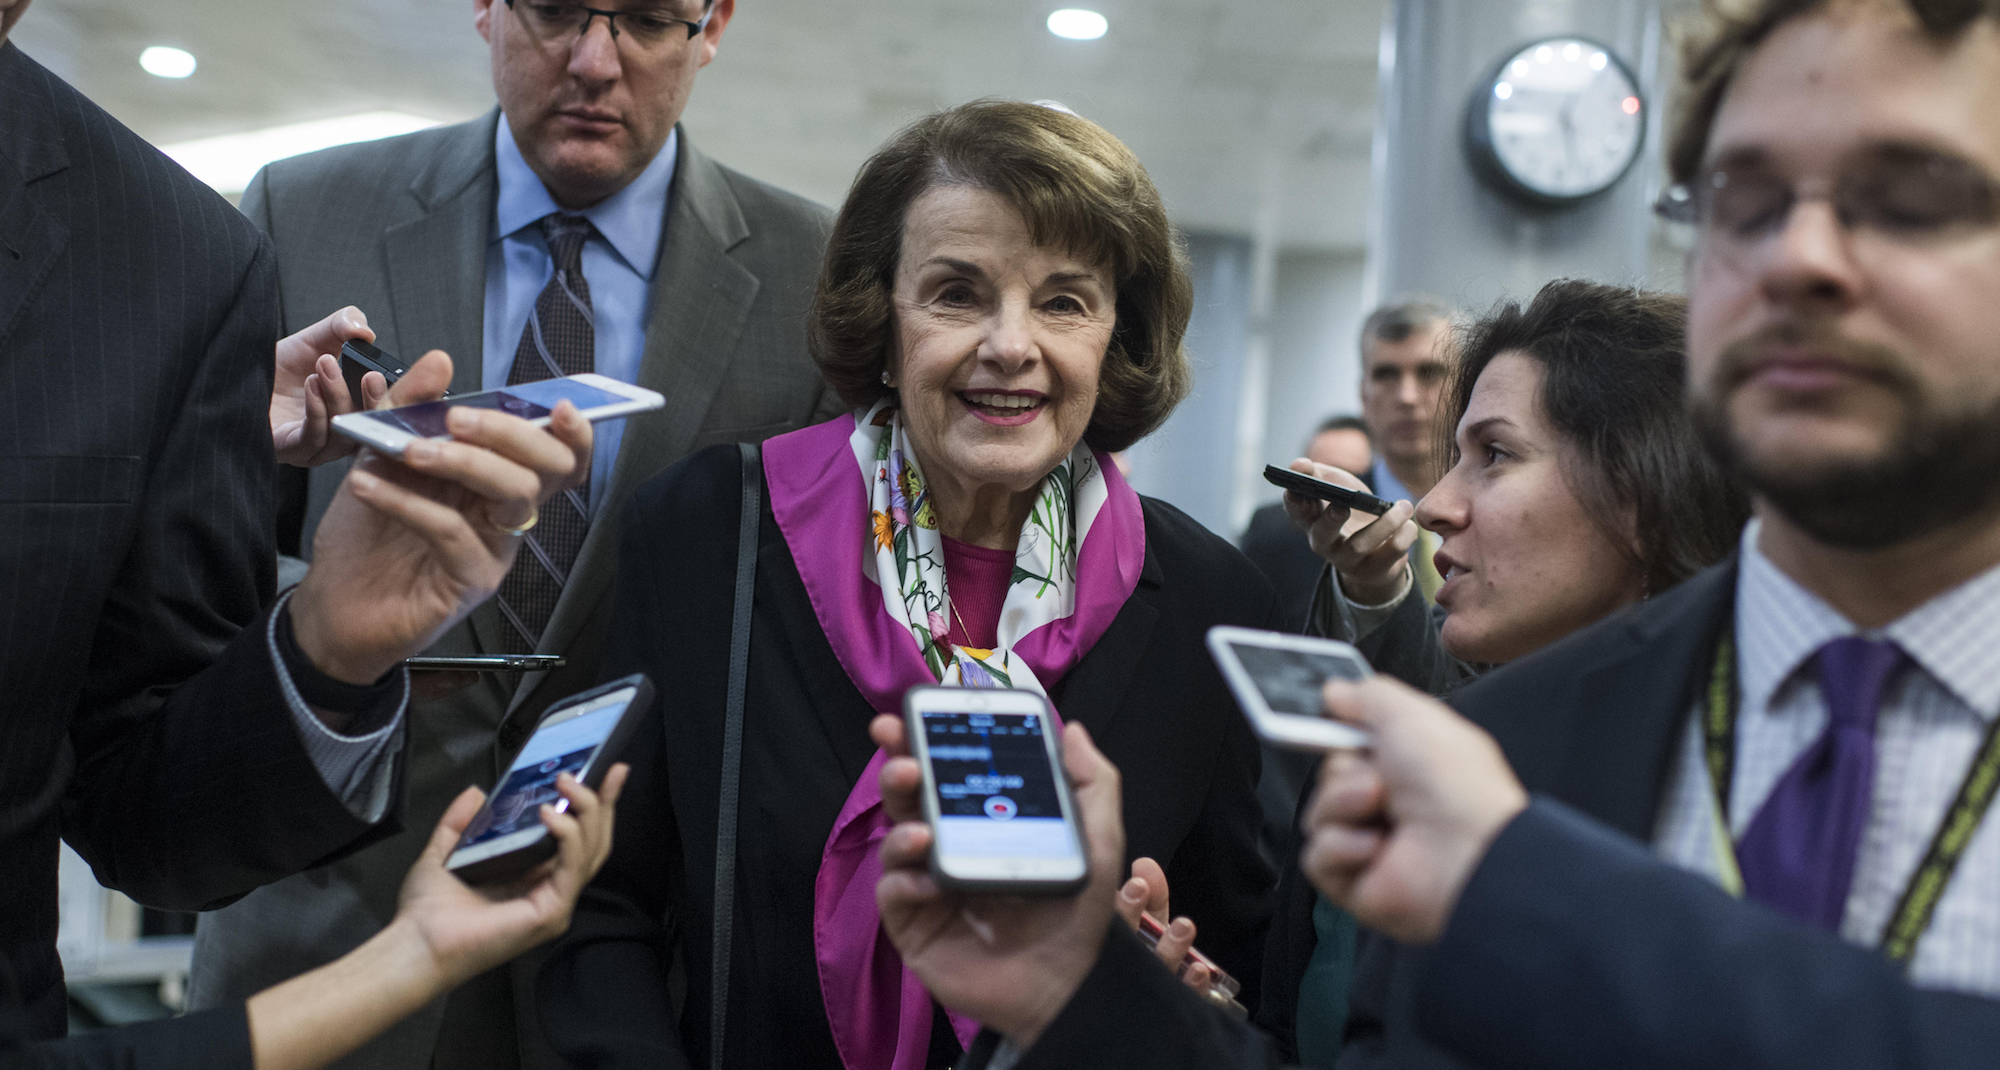 Trump gives Feinstein a re-election gift